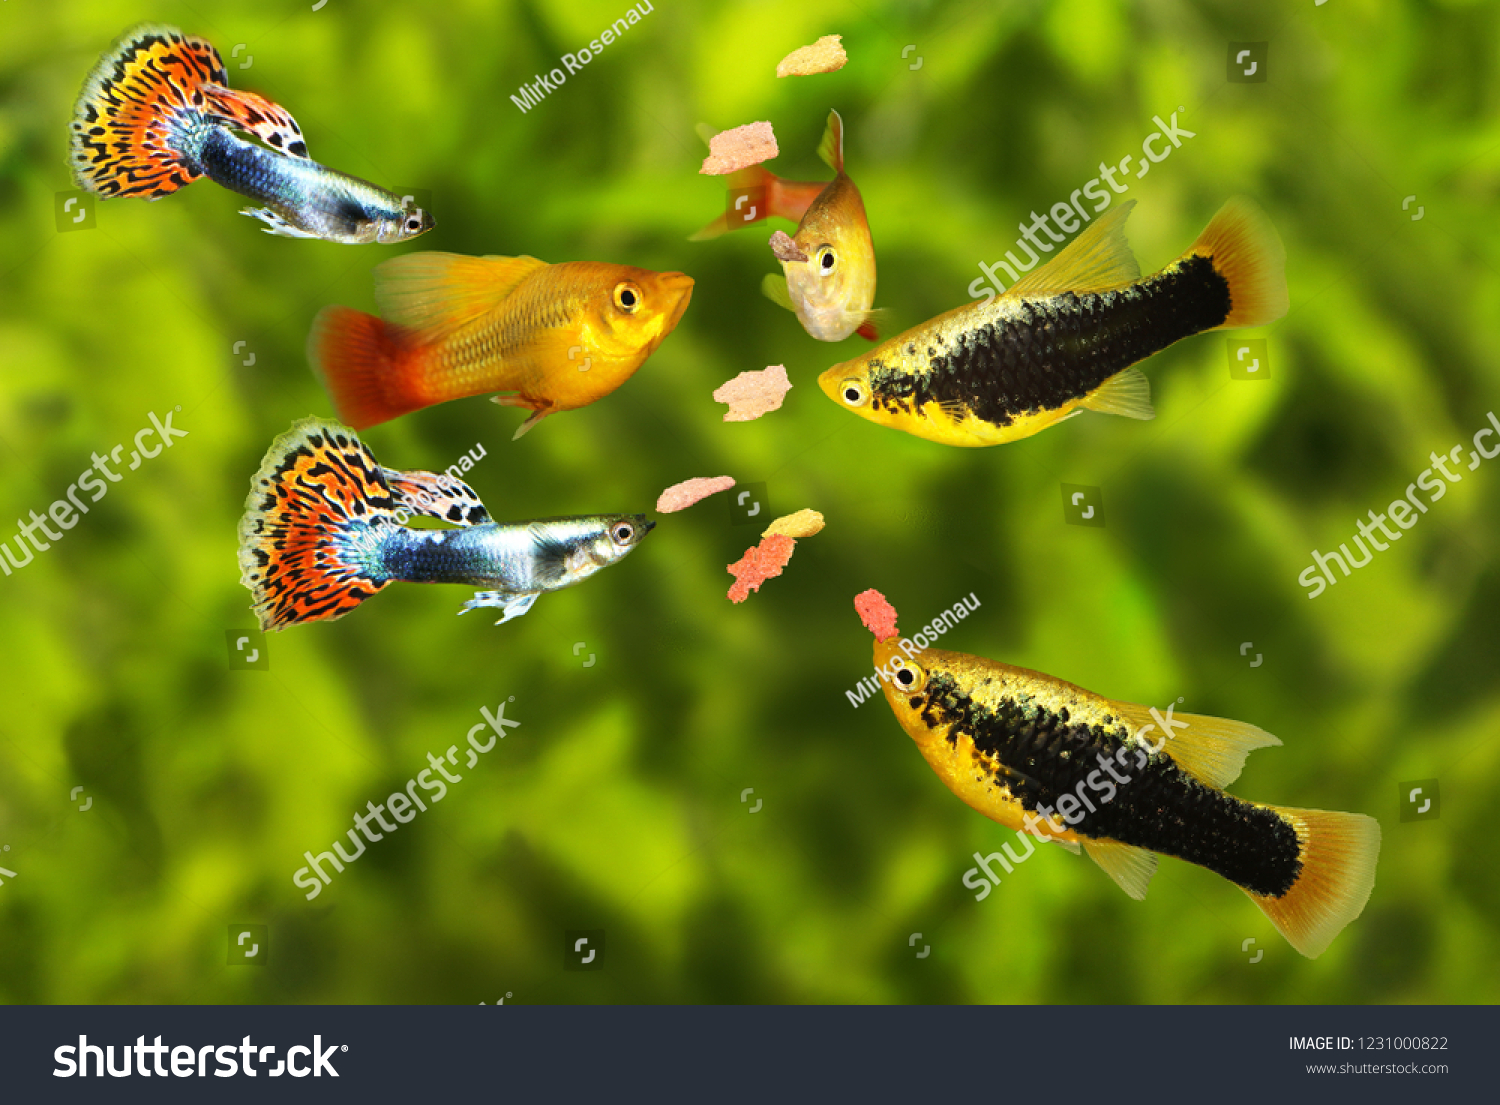 Feeding Swarm Aquarium Fish Eating Flake Stock Photo Edit Now